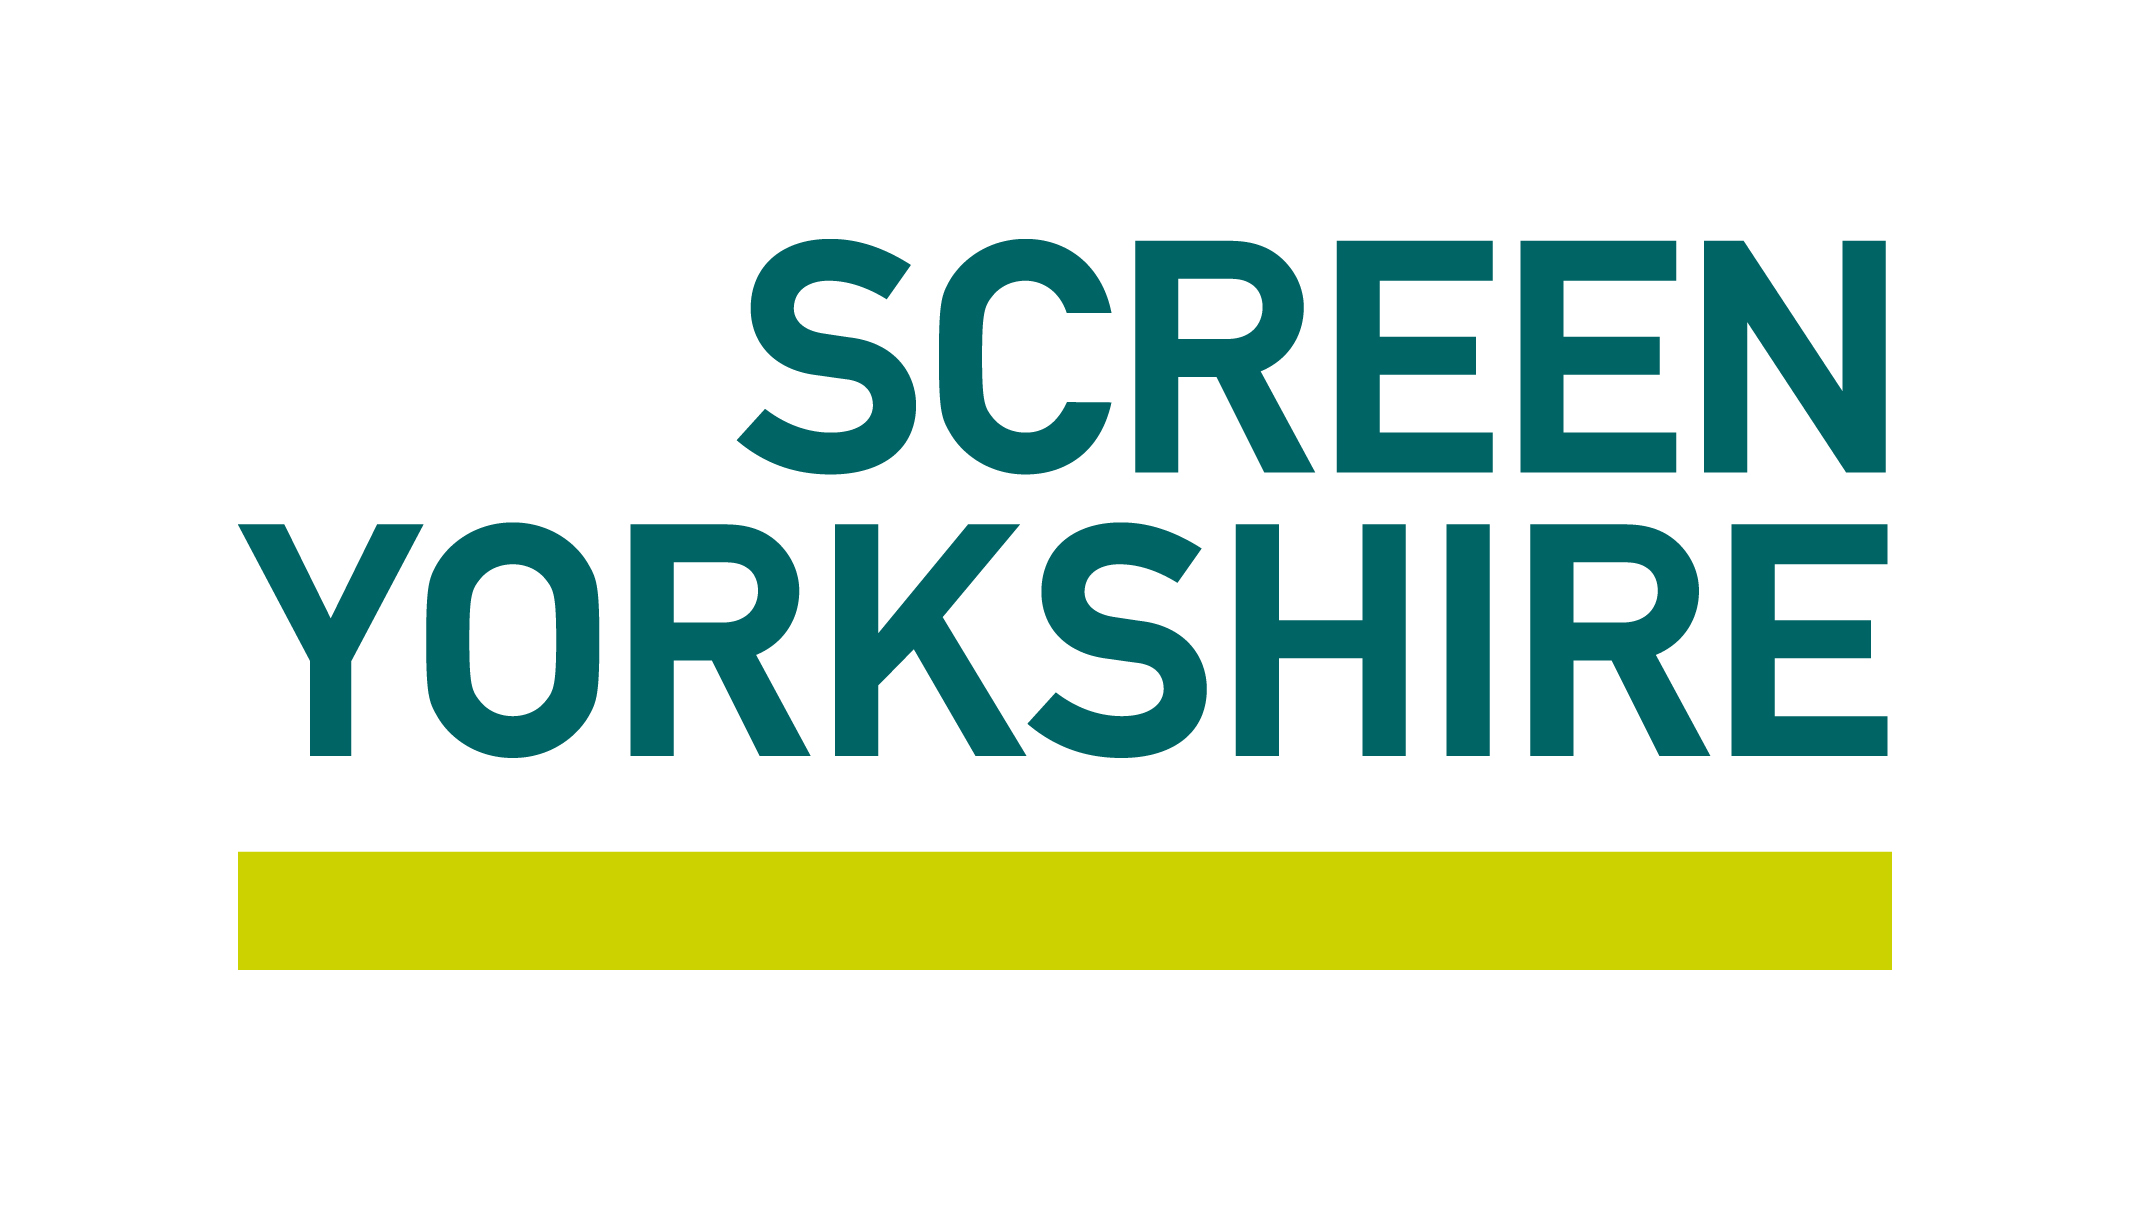 screenyorkshire2.jpg